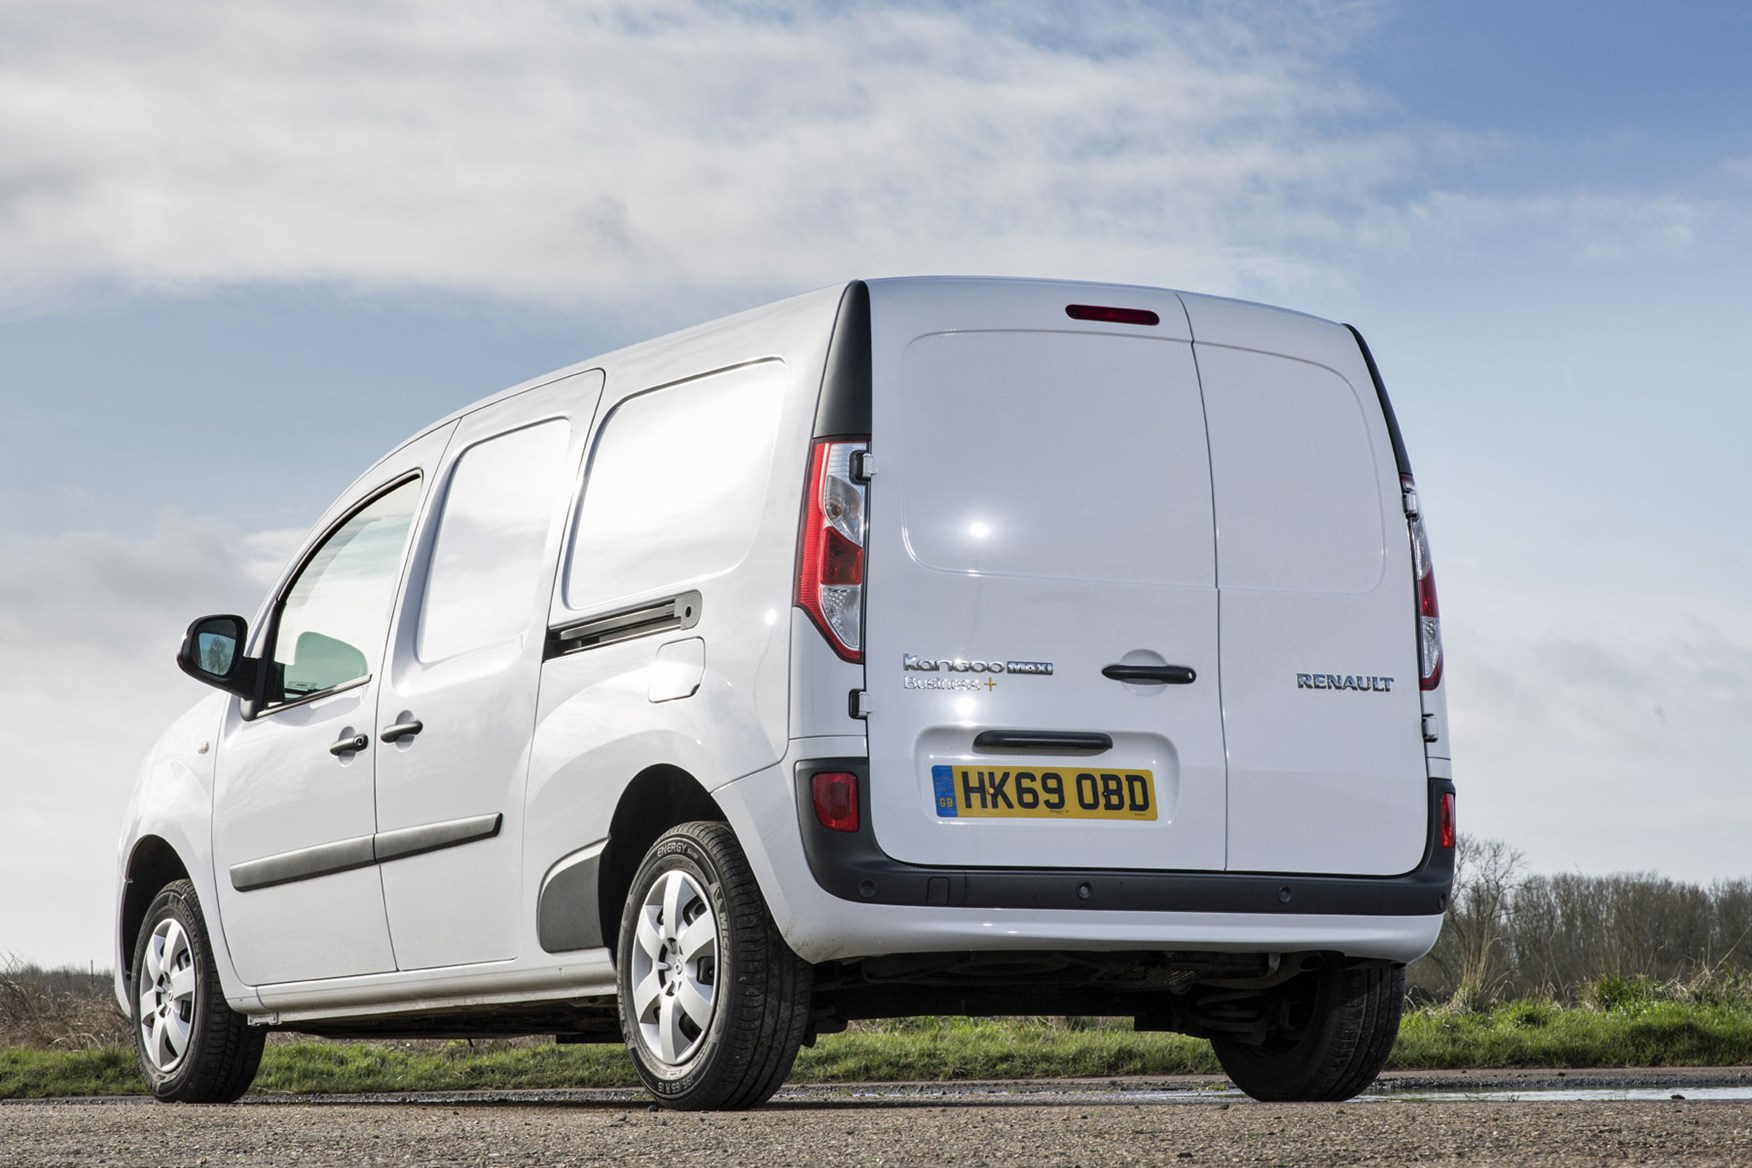 Renault Kangoo van review - rear view, white, 2020